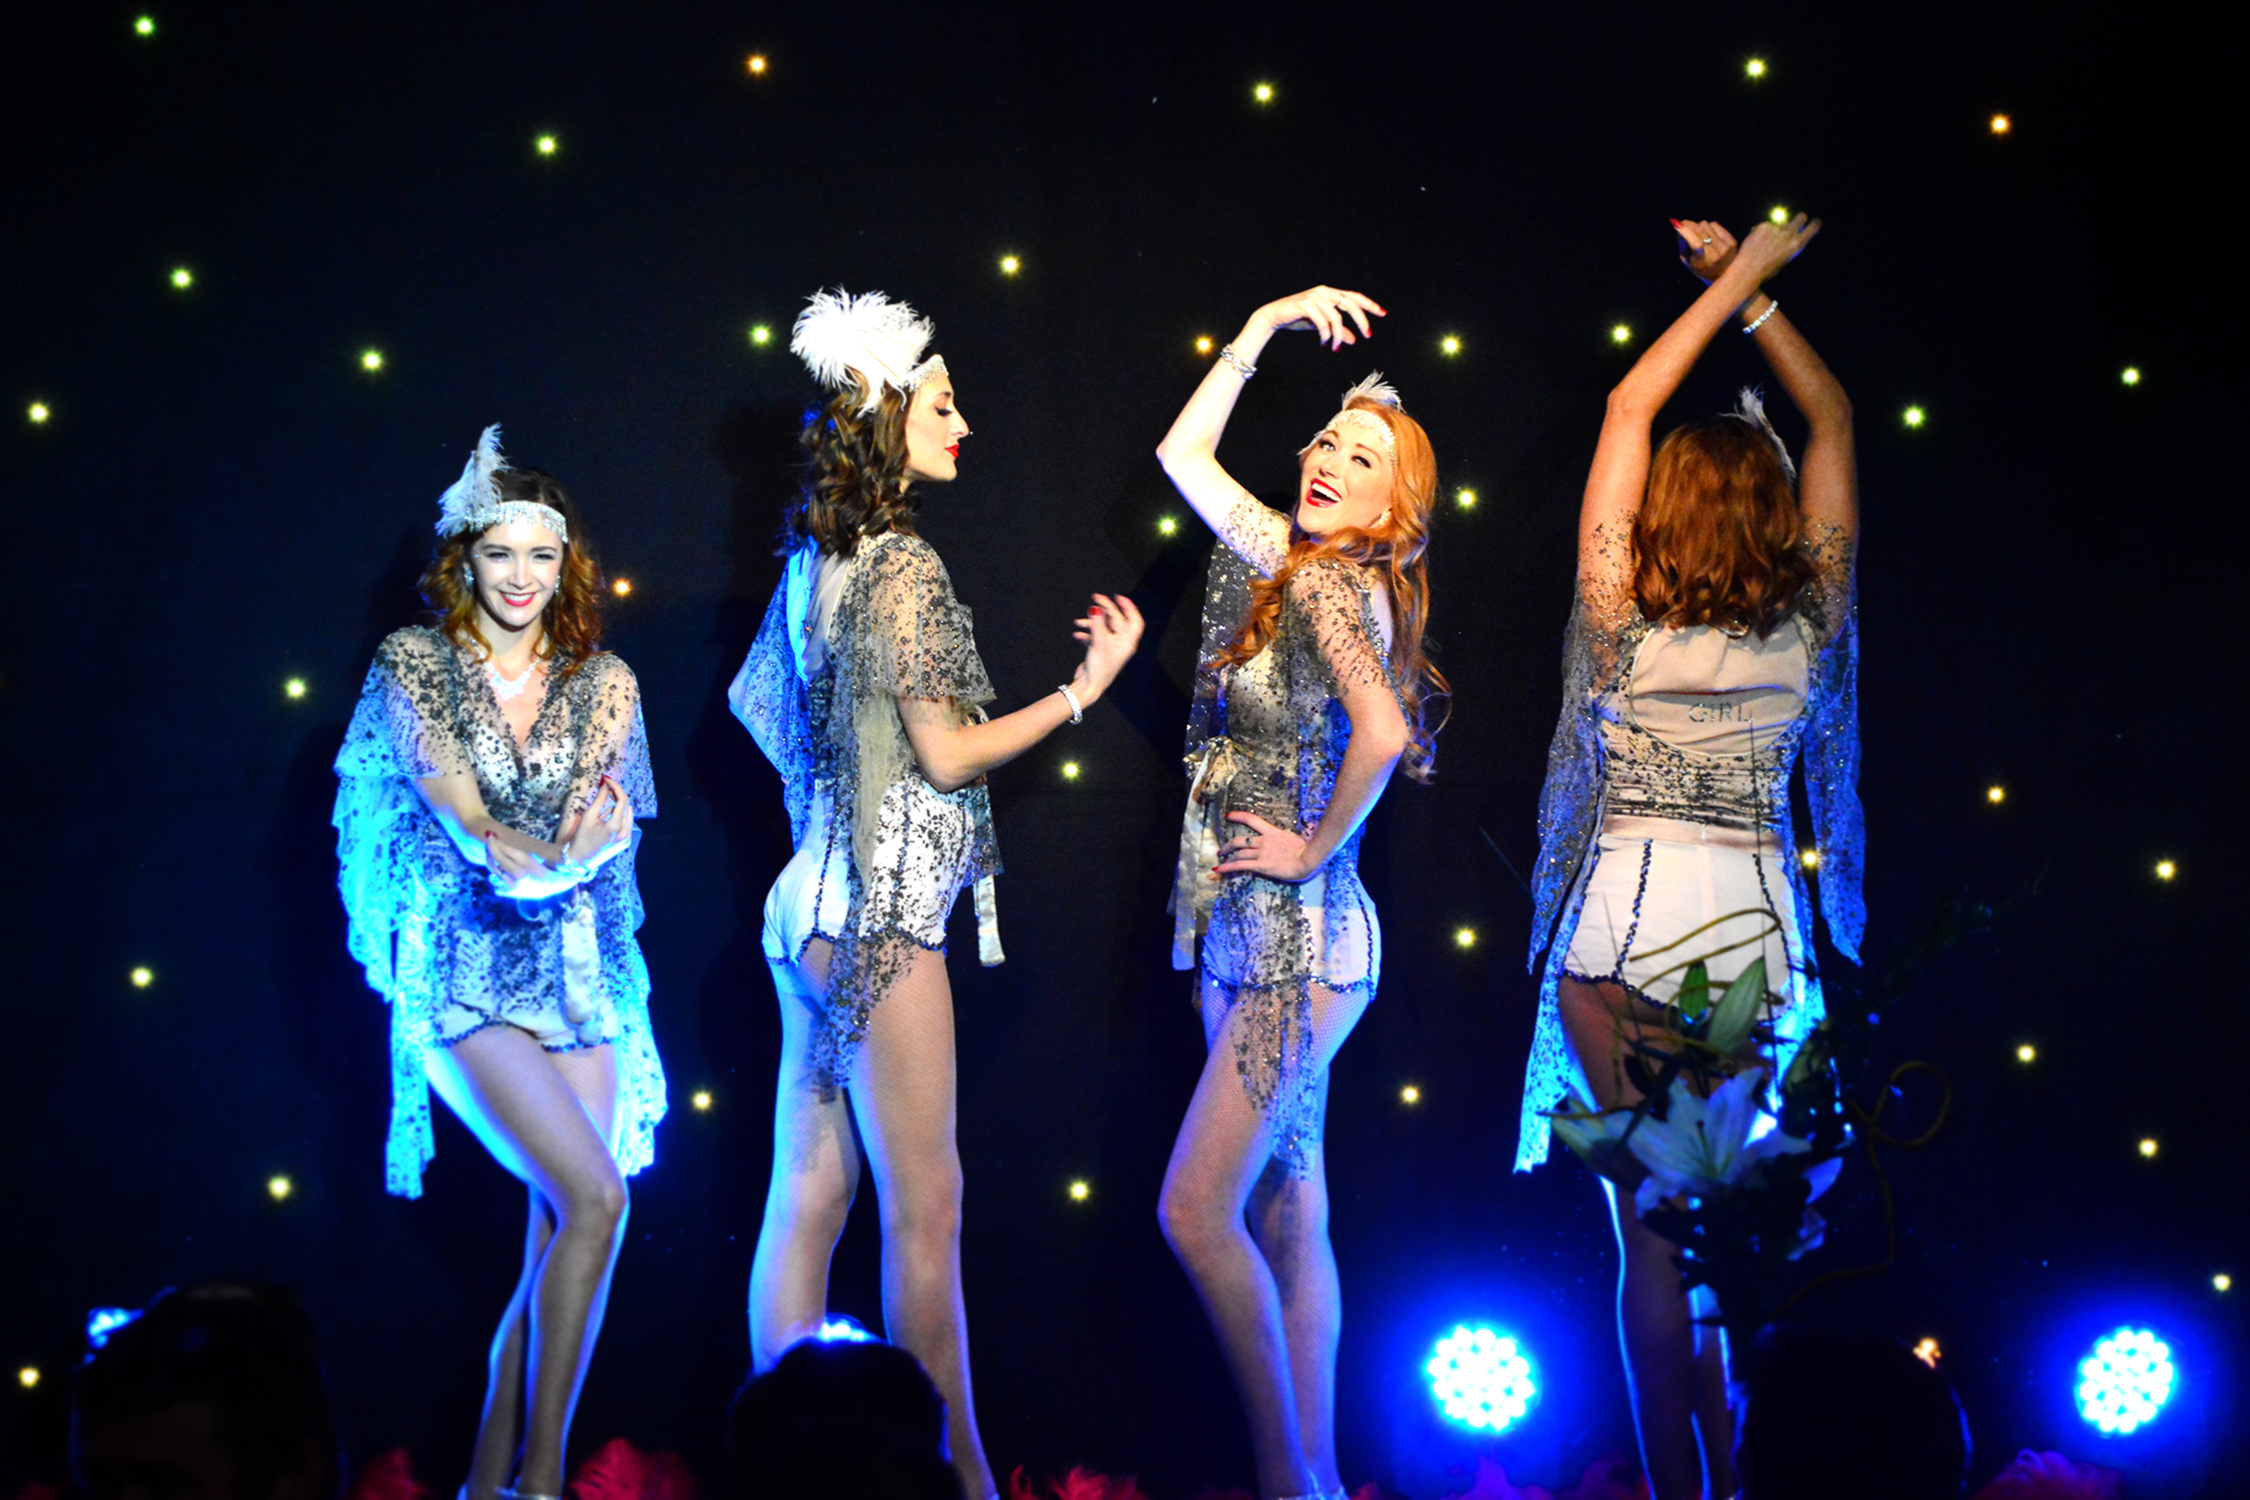 The 'It Girls' live performance